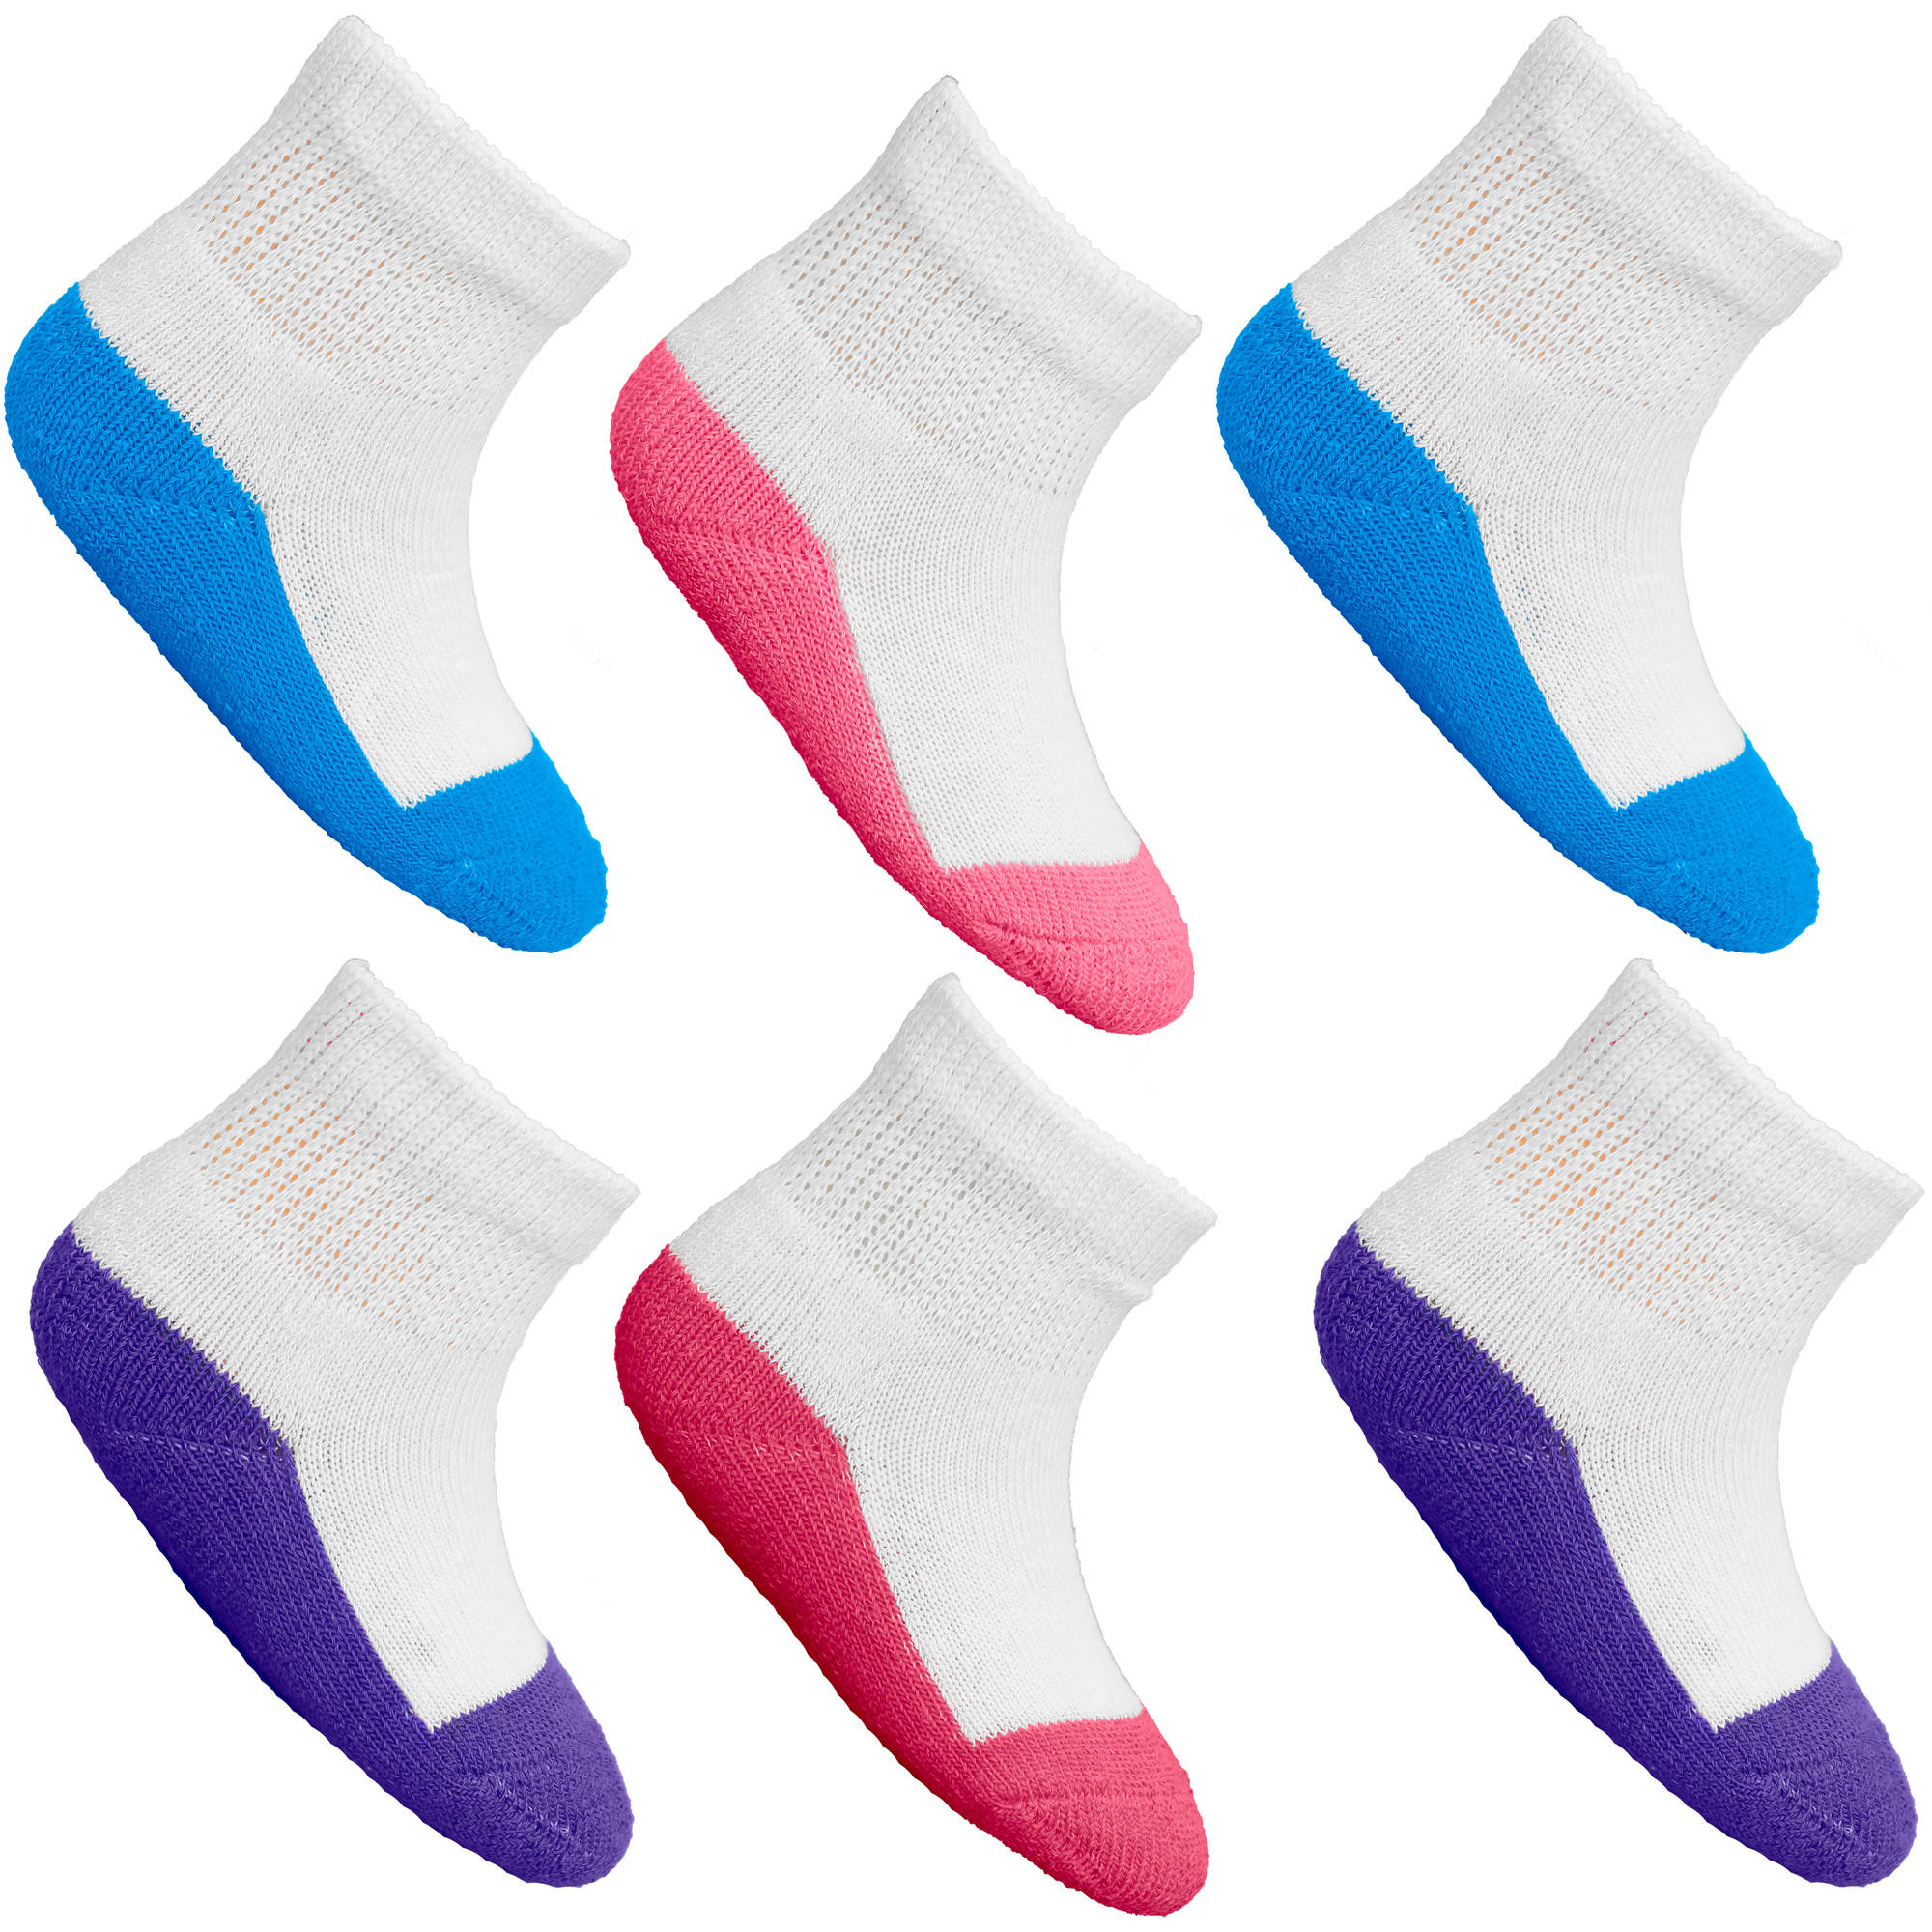 Fruit of the Loom Baby Boys Assorted Ankle Socks - 6 Pairs